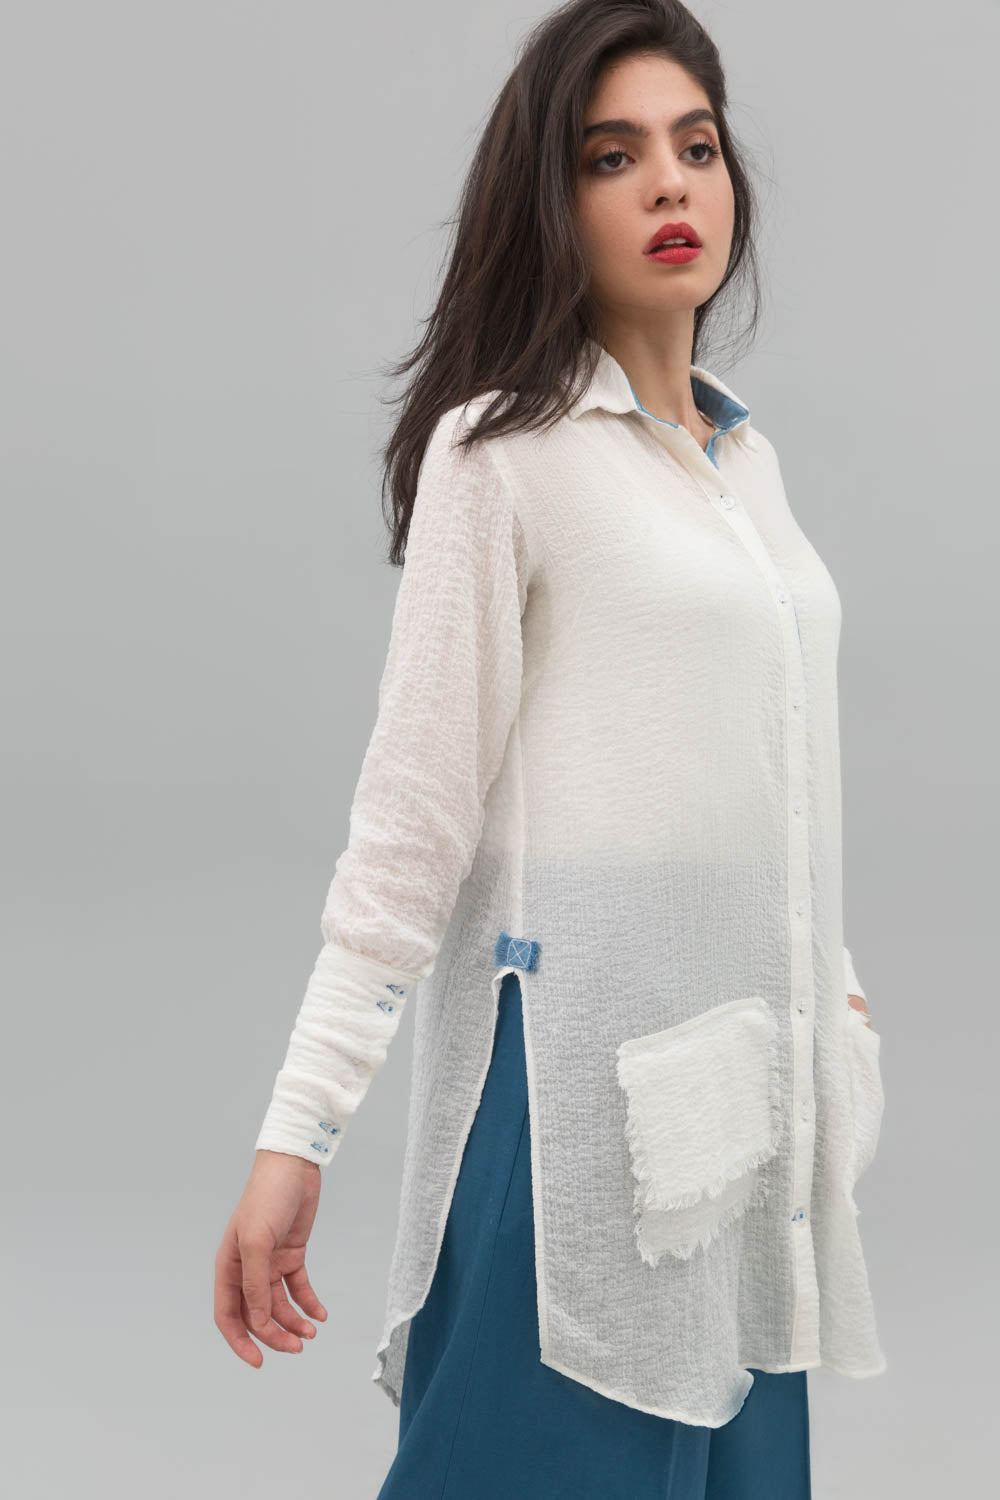 White Button Down Fusion Shirt In Crinkle Cotton - yesonline.pk